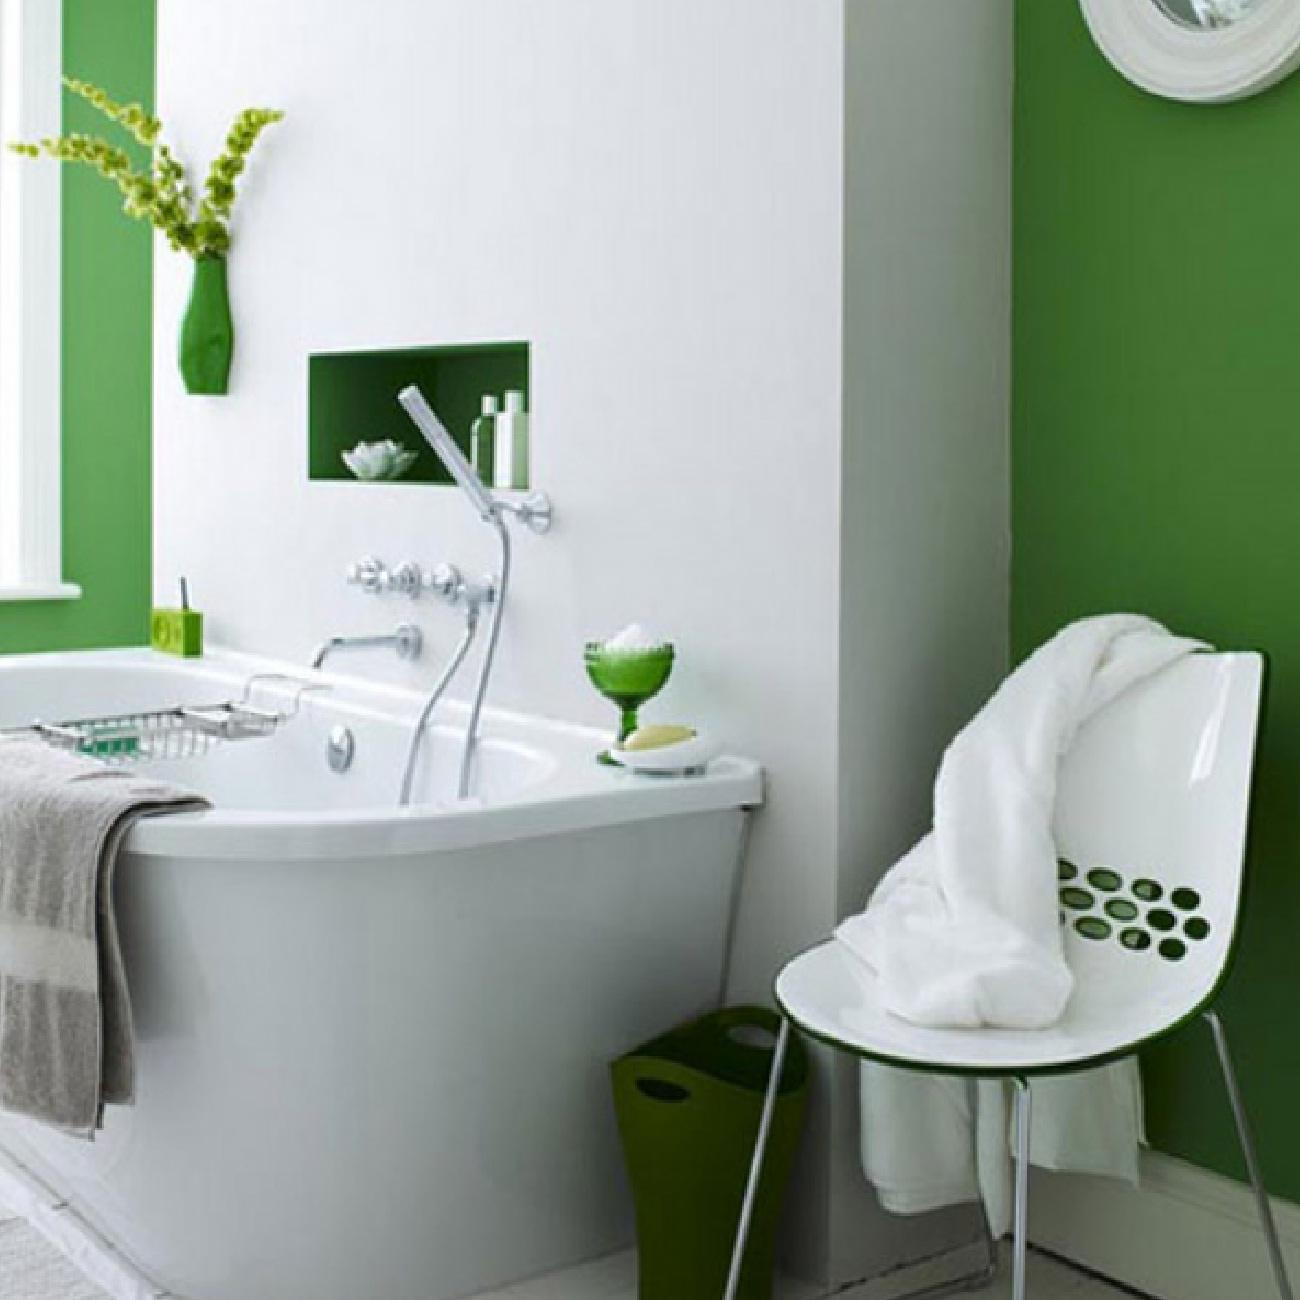 Bathroom-Styles-Design-Ideas-impressive-concept-for-luxurious-green-fresh-modern-bathroom-interior-design-ideas